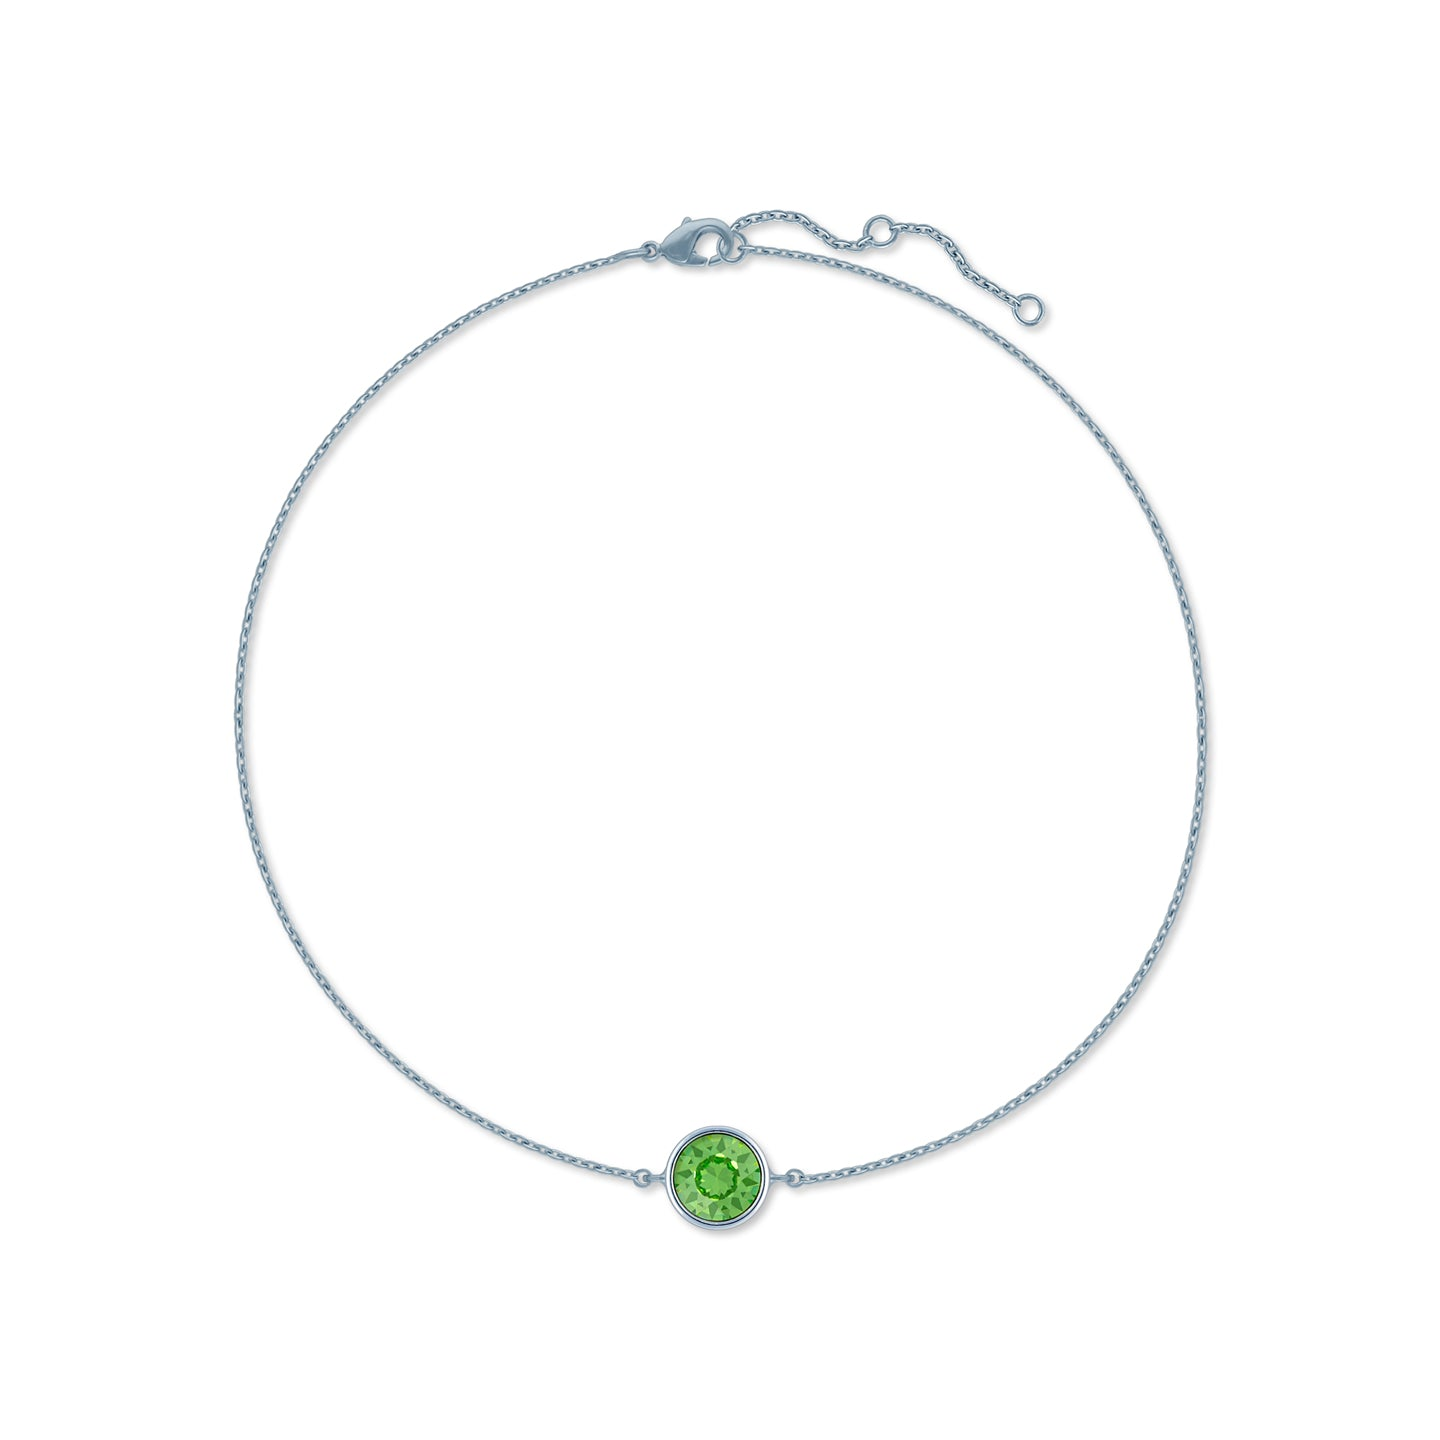 Harley Chain Bracelet with Green Peridot Round Crystals from Swarovski Silver Toned Rhodium Plated - Ed Heart